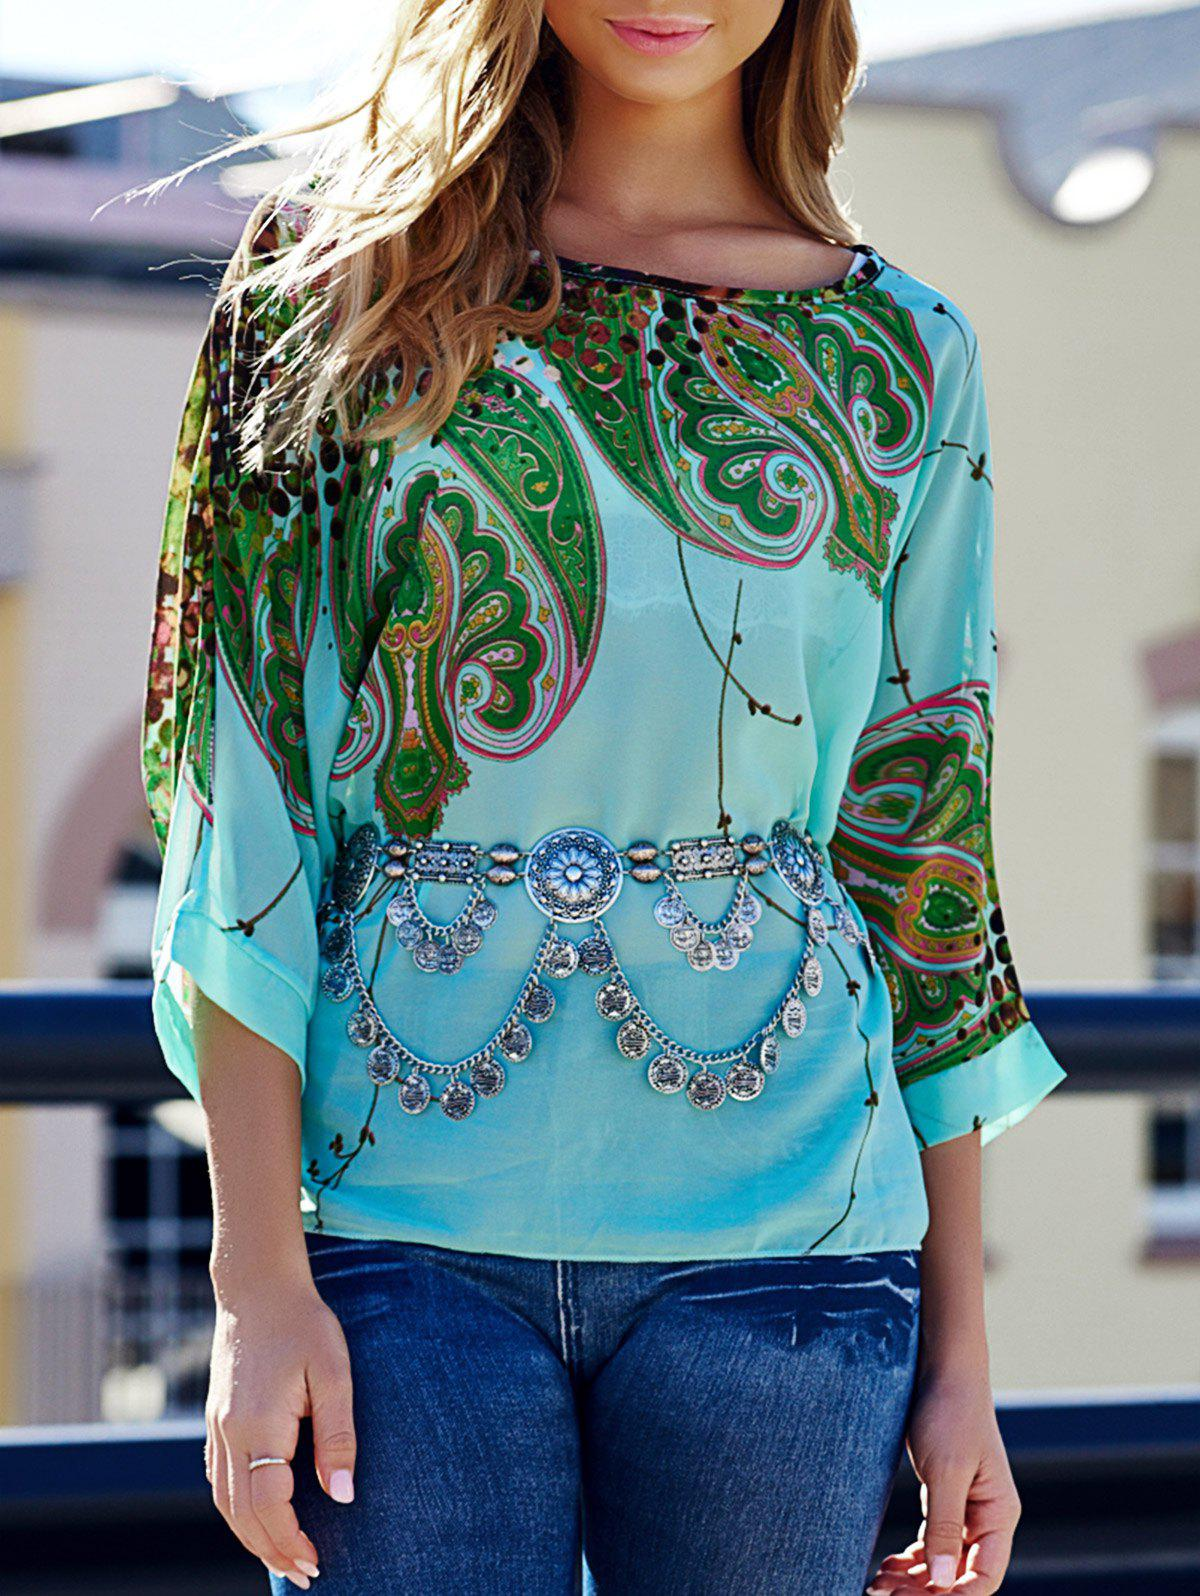 Scoop Neck Batwing Sleeve Printed Loose-Fitting Blouse For Women - COLORMIX L